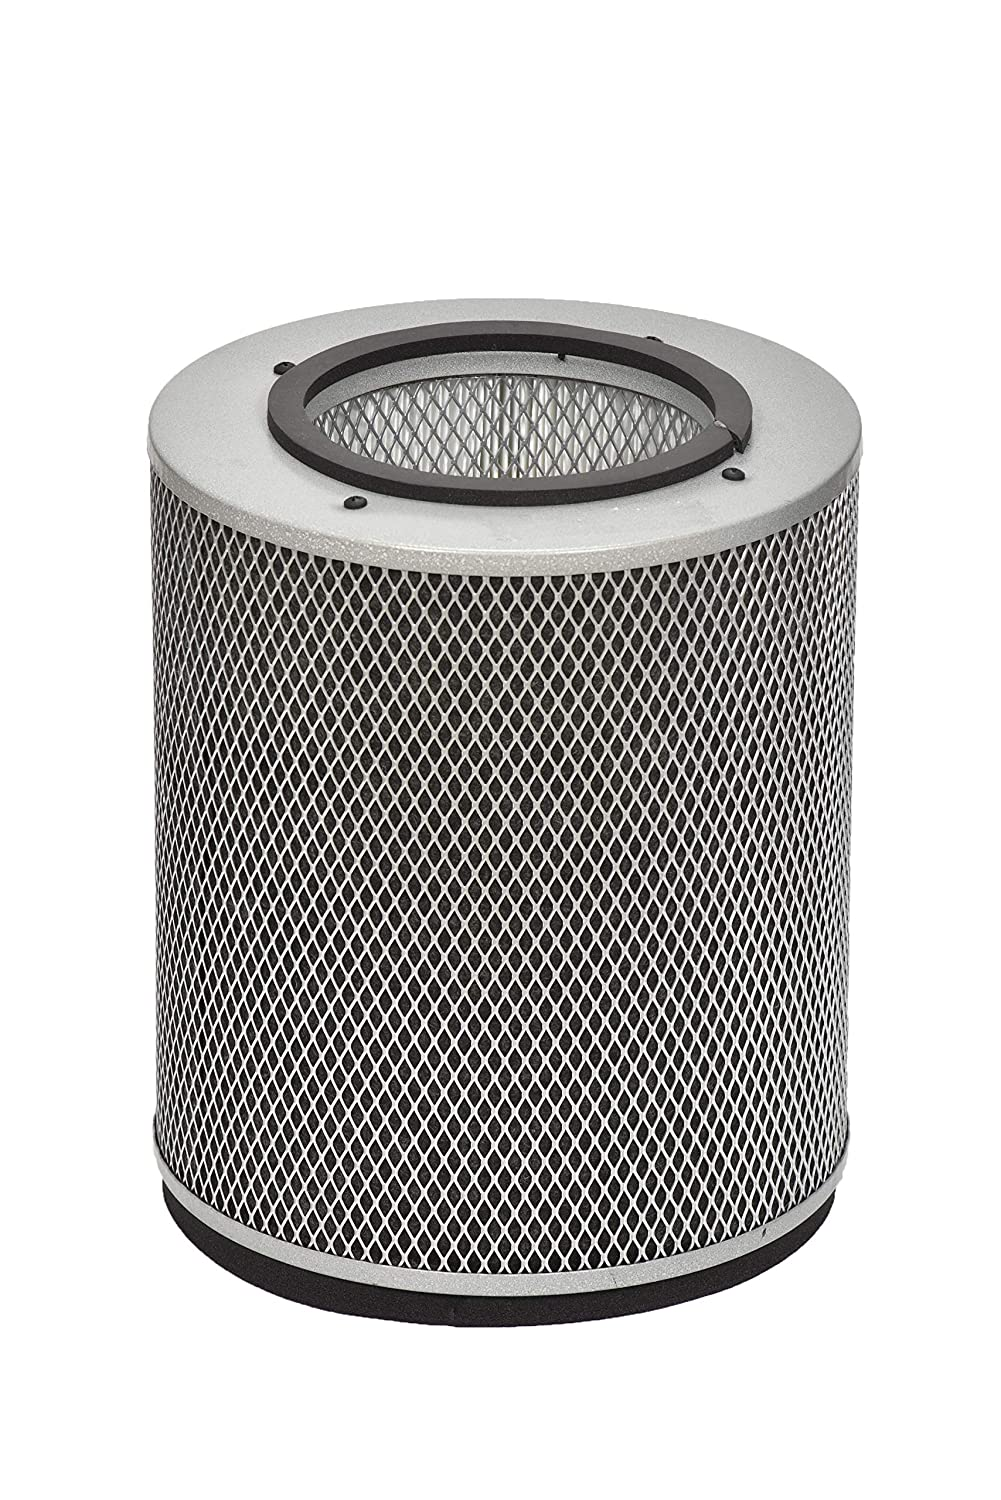 1-(Pack) Austin Air FR200A Healthmate Junior Replacement Filter, Black